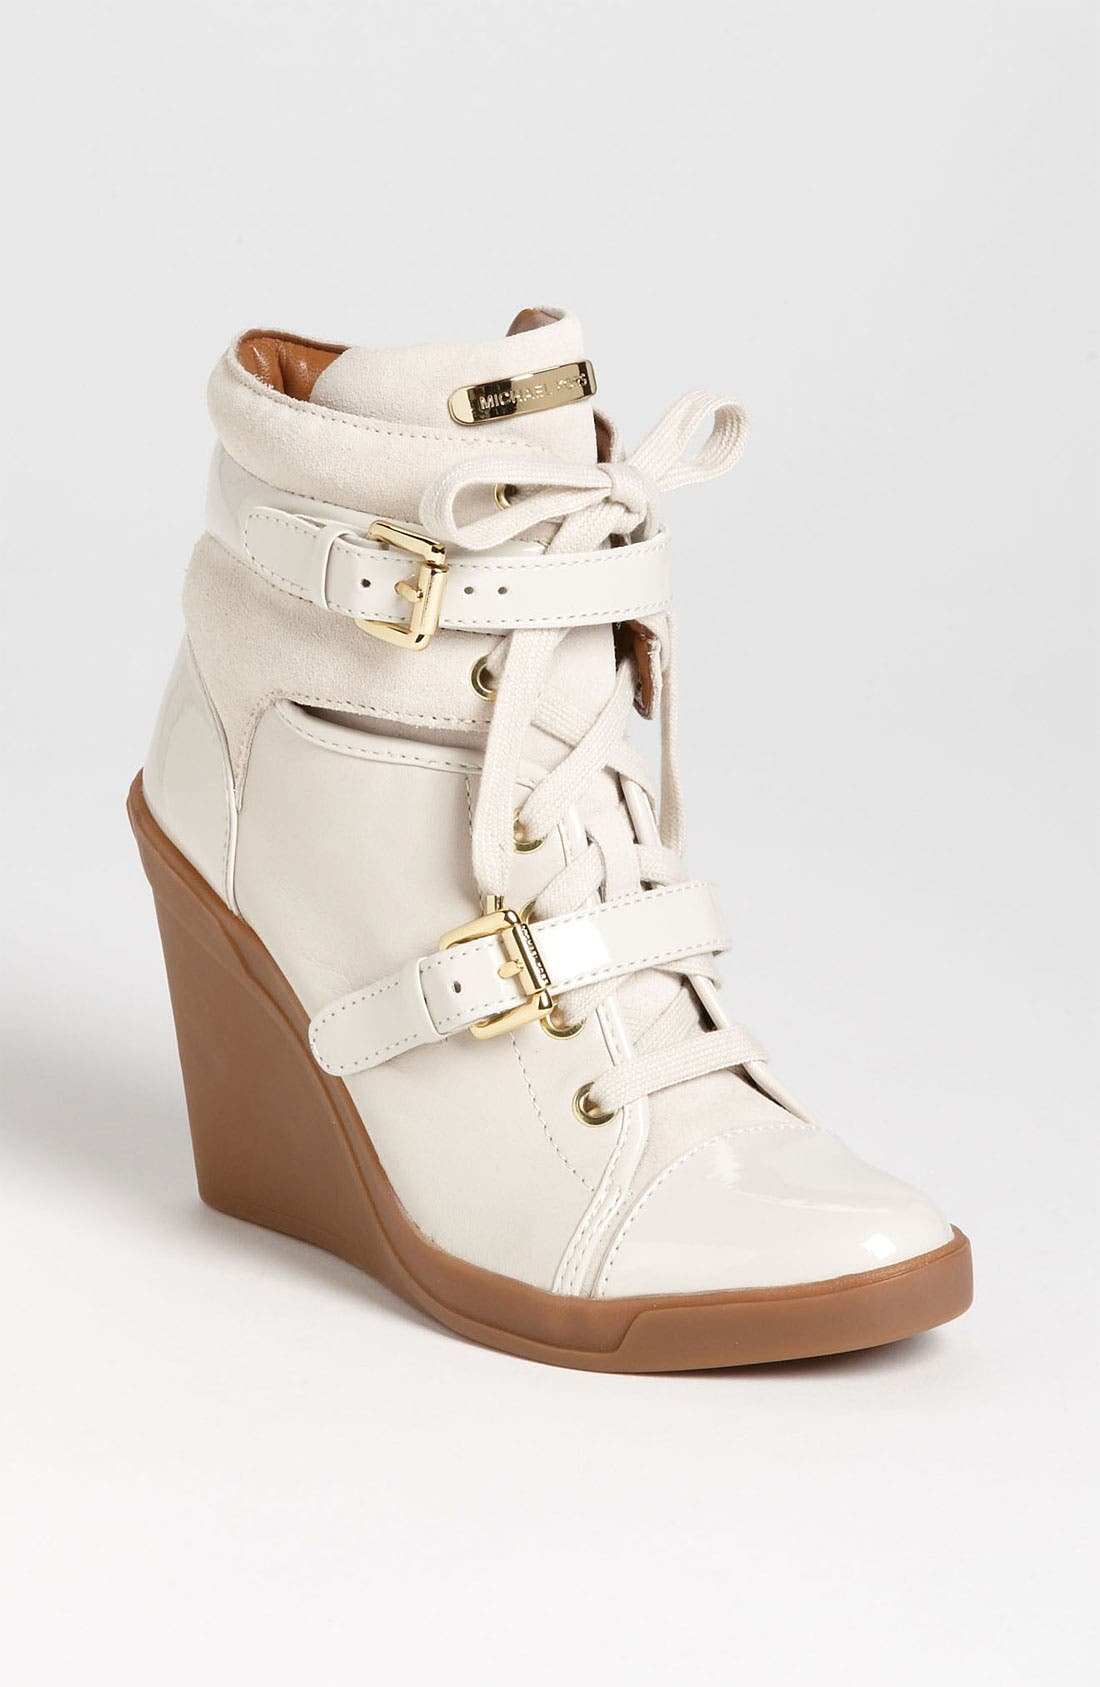 Alternate Image 1 Selected - MICHAEL Michael Kors 'Skid' Wedge Sneaker